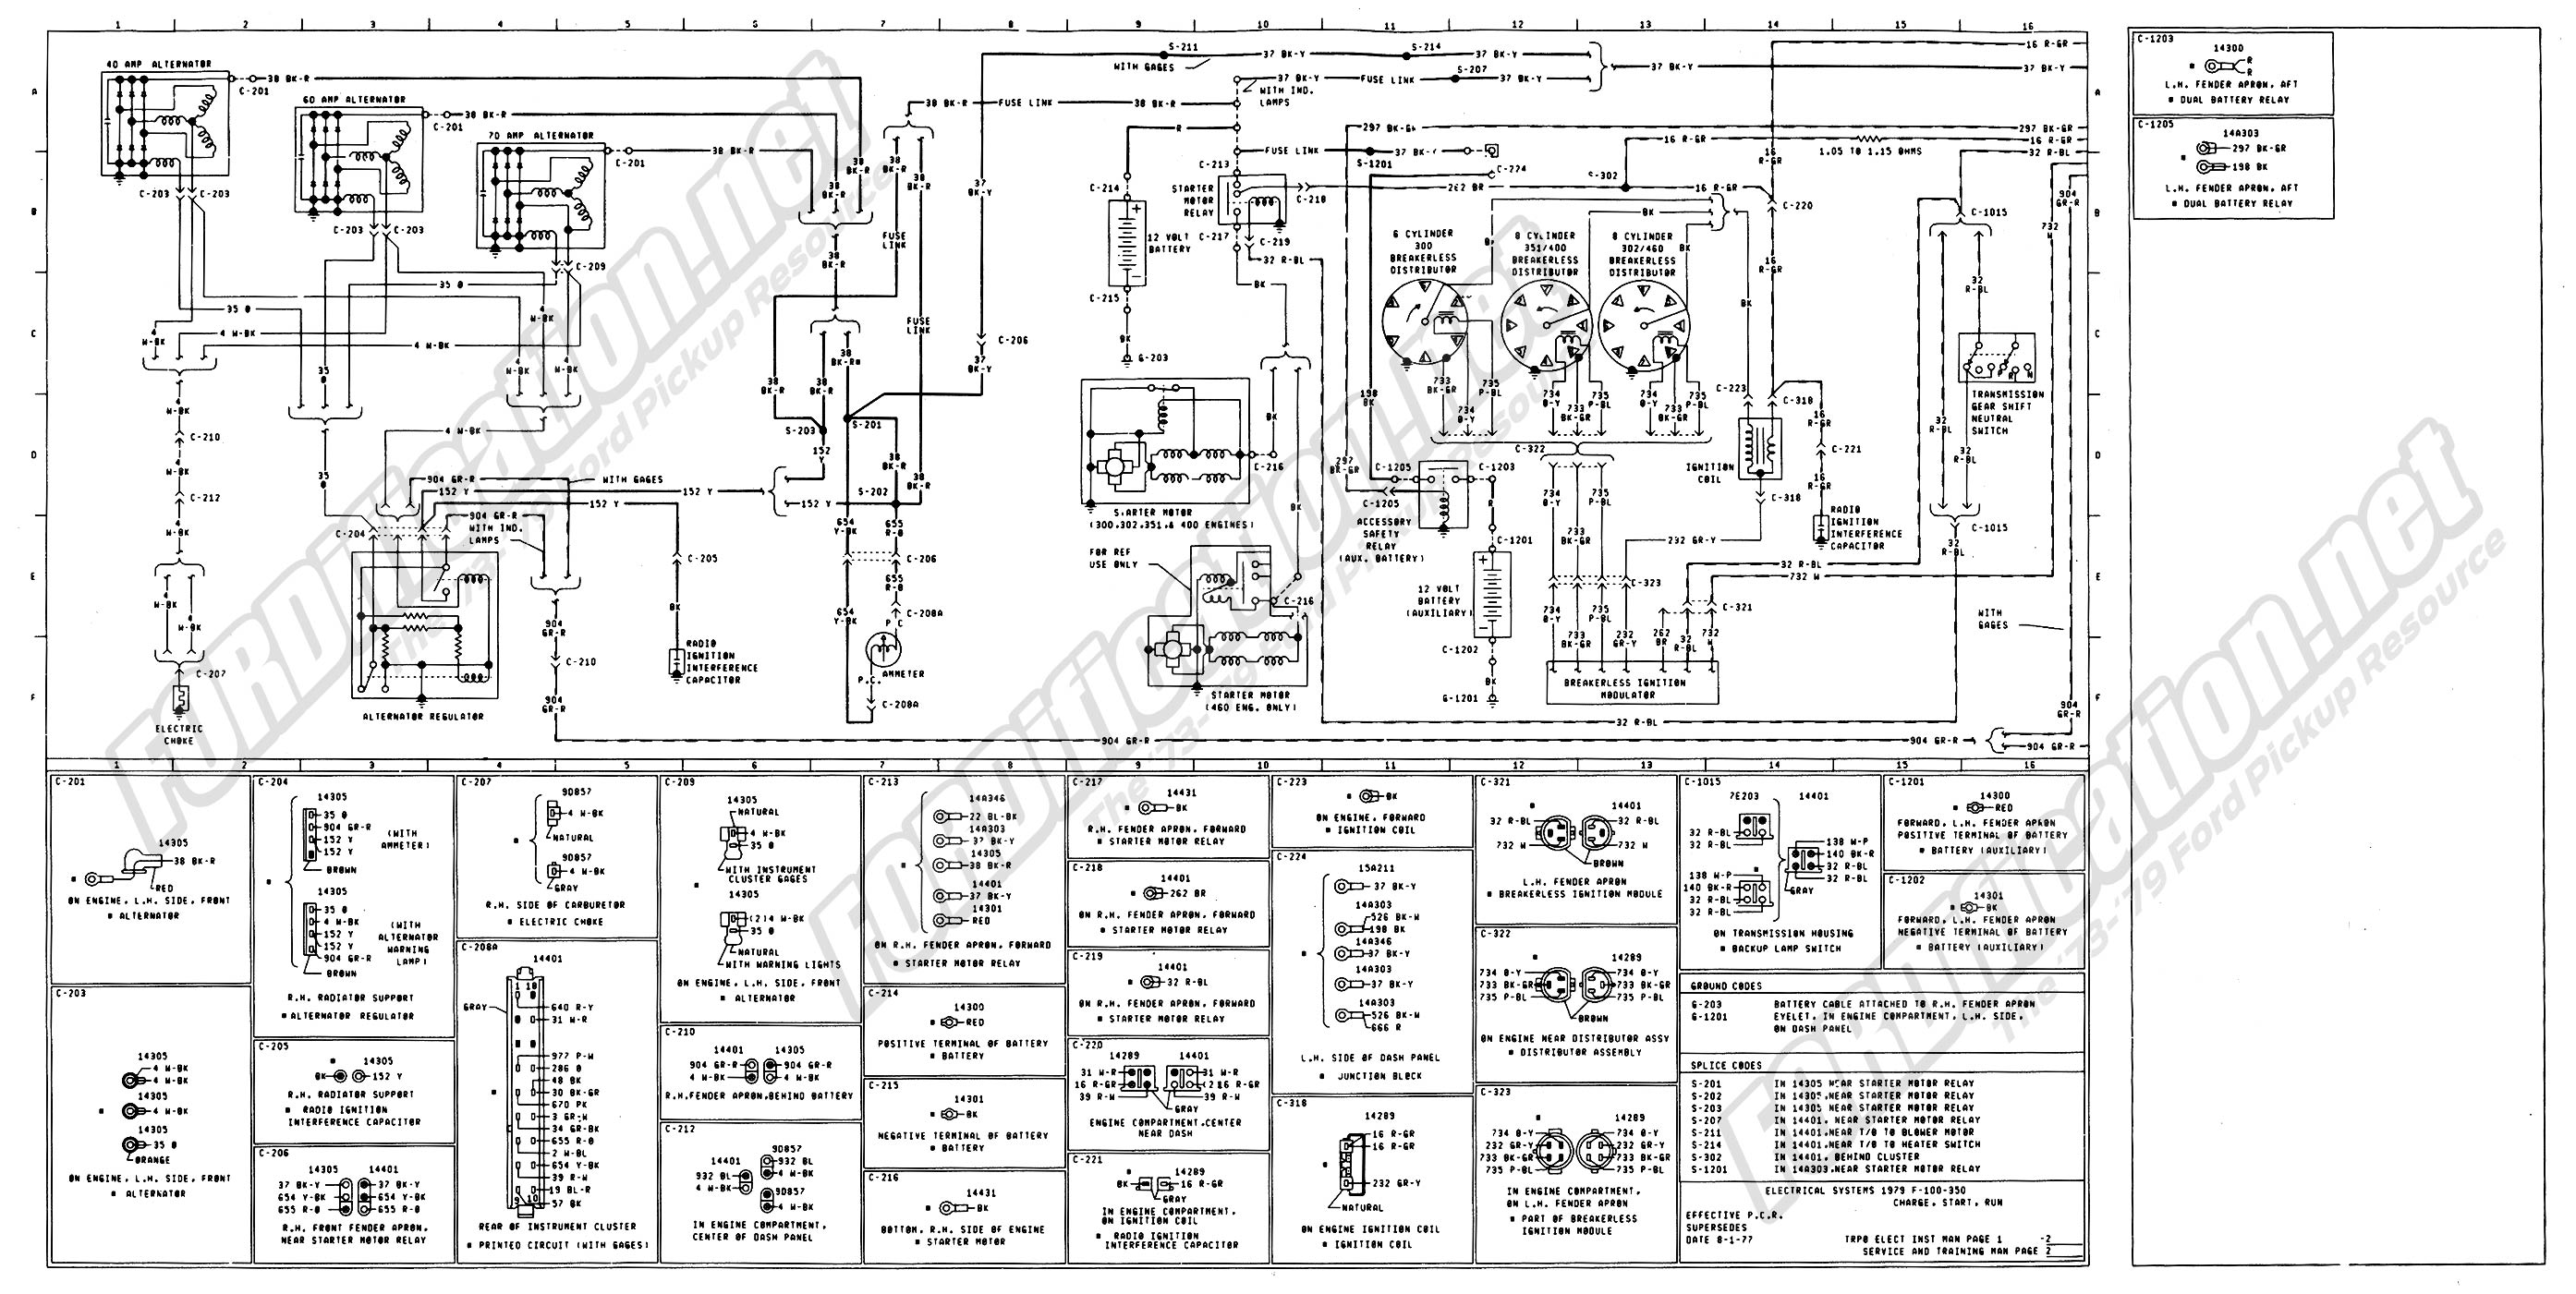 Wiring diagram 1979 f 150 wiring diagrams schematics 1973 1979 ford truck wiring diagrams schematics fordification net wiring diagram 1979 f 150 6 wiring diagram 1979 f 150 publicscrutiny Image collections